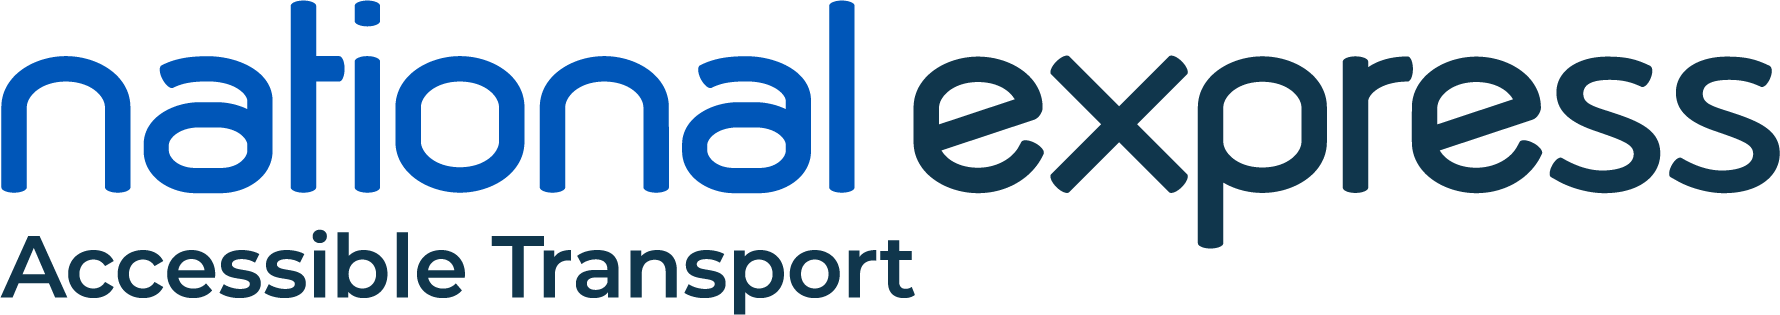 National Express Accessible Transport logo